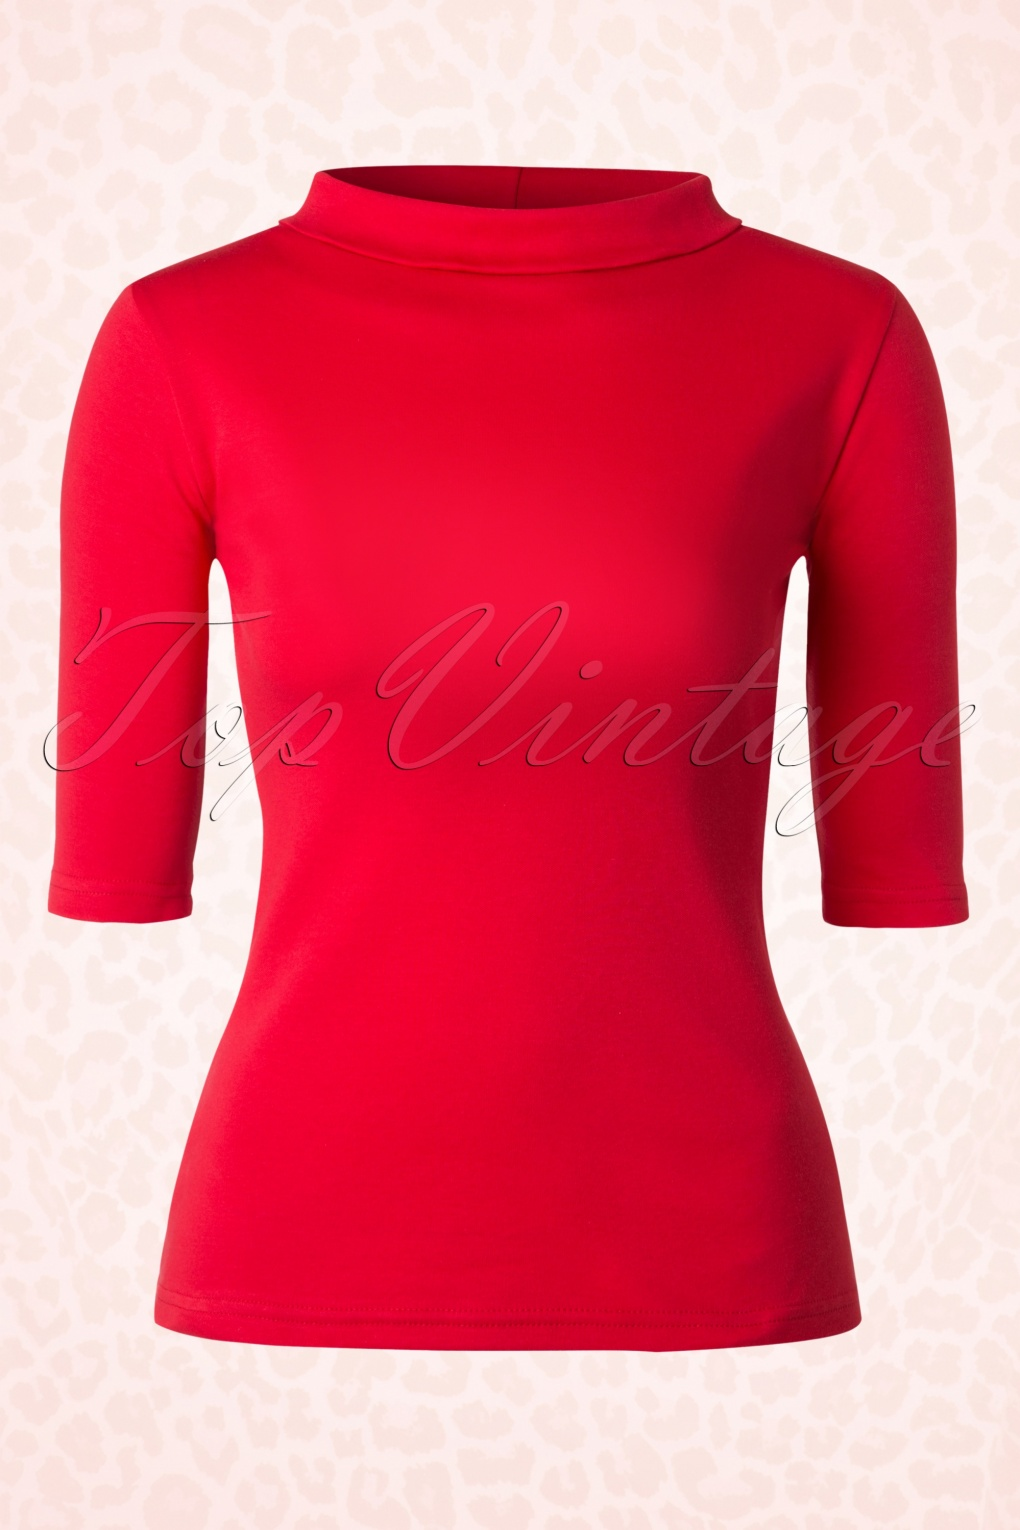 1960s -1970s Blouses, Shirts and Tops 60s Spy Top in Red £54.10 AT vintagedancer.com